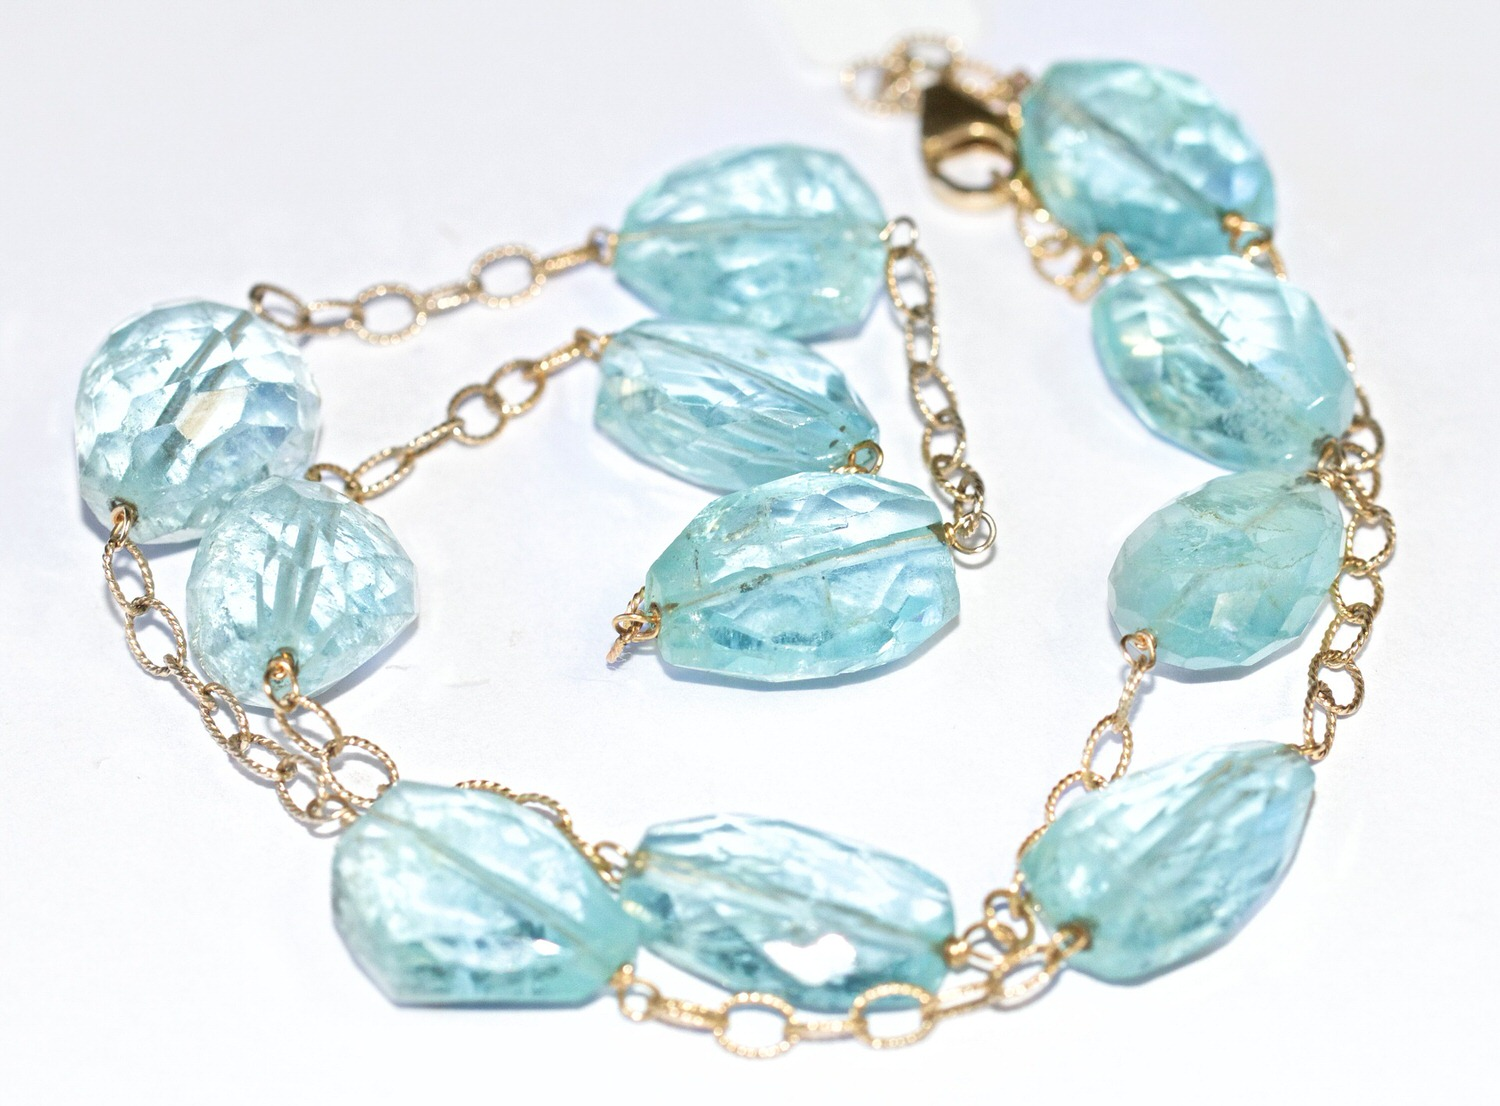 Exotically shaped aquamarines make for some very unique jewellery.